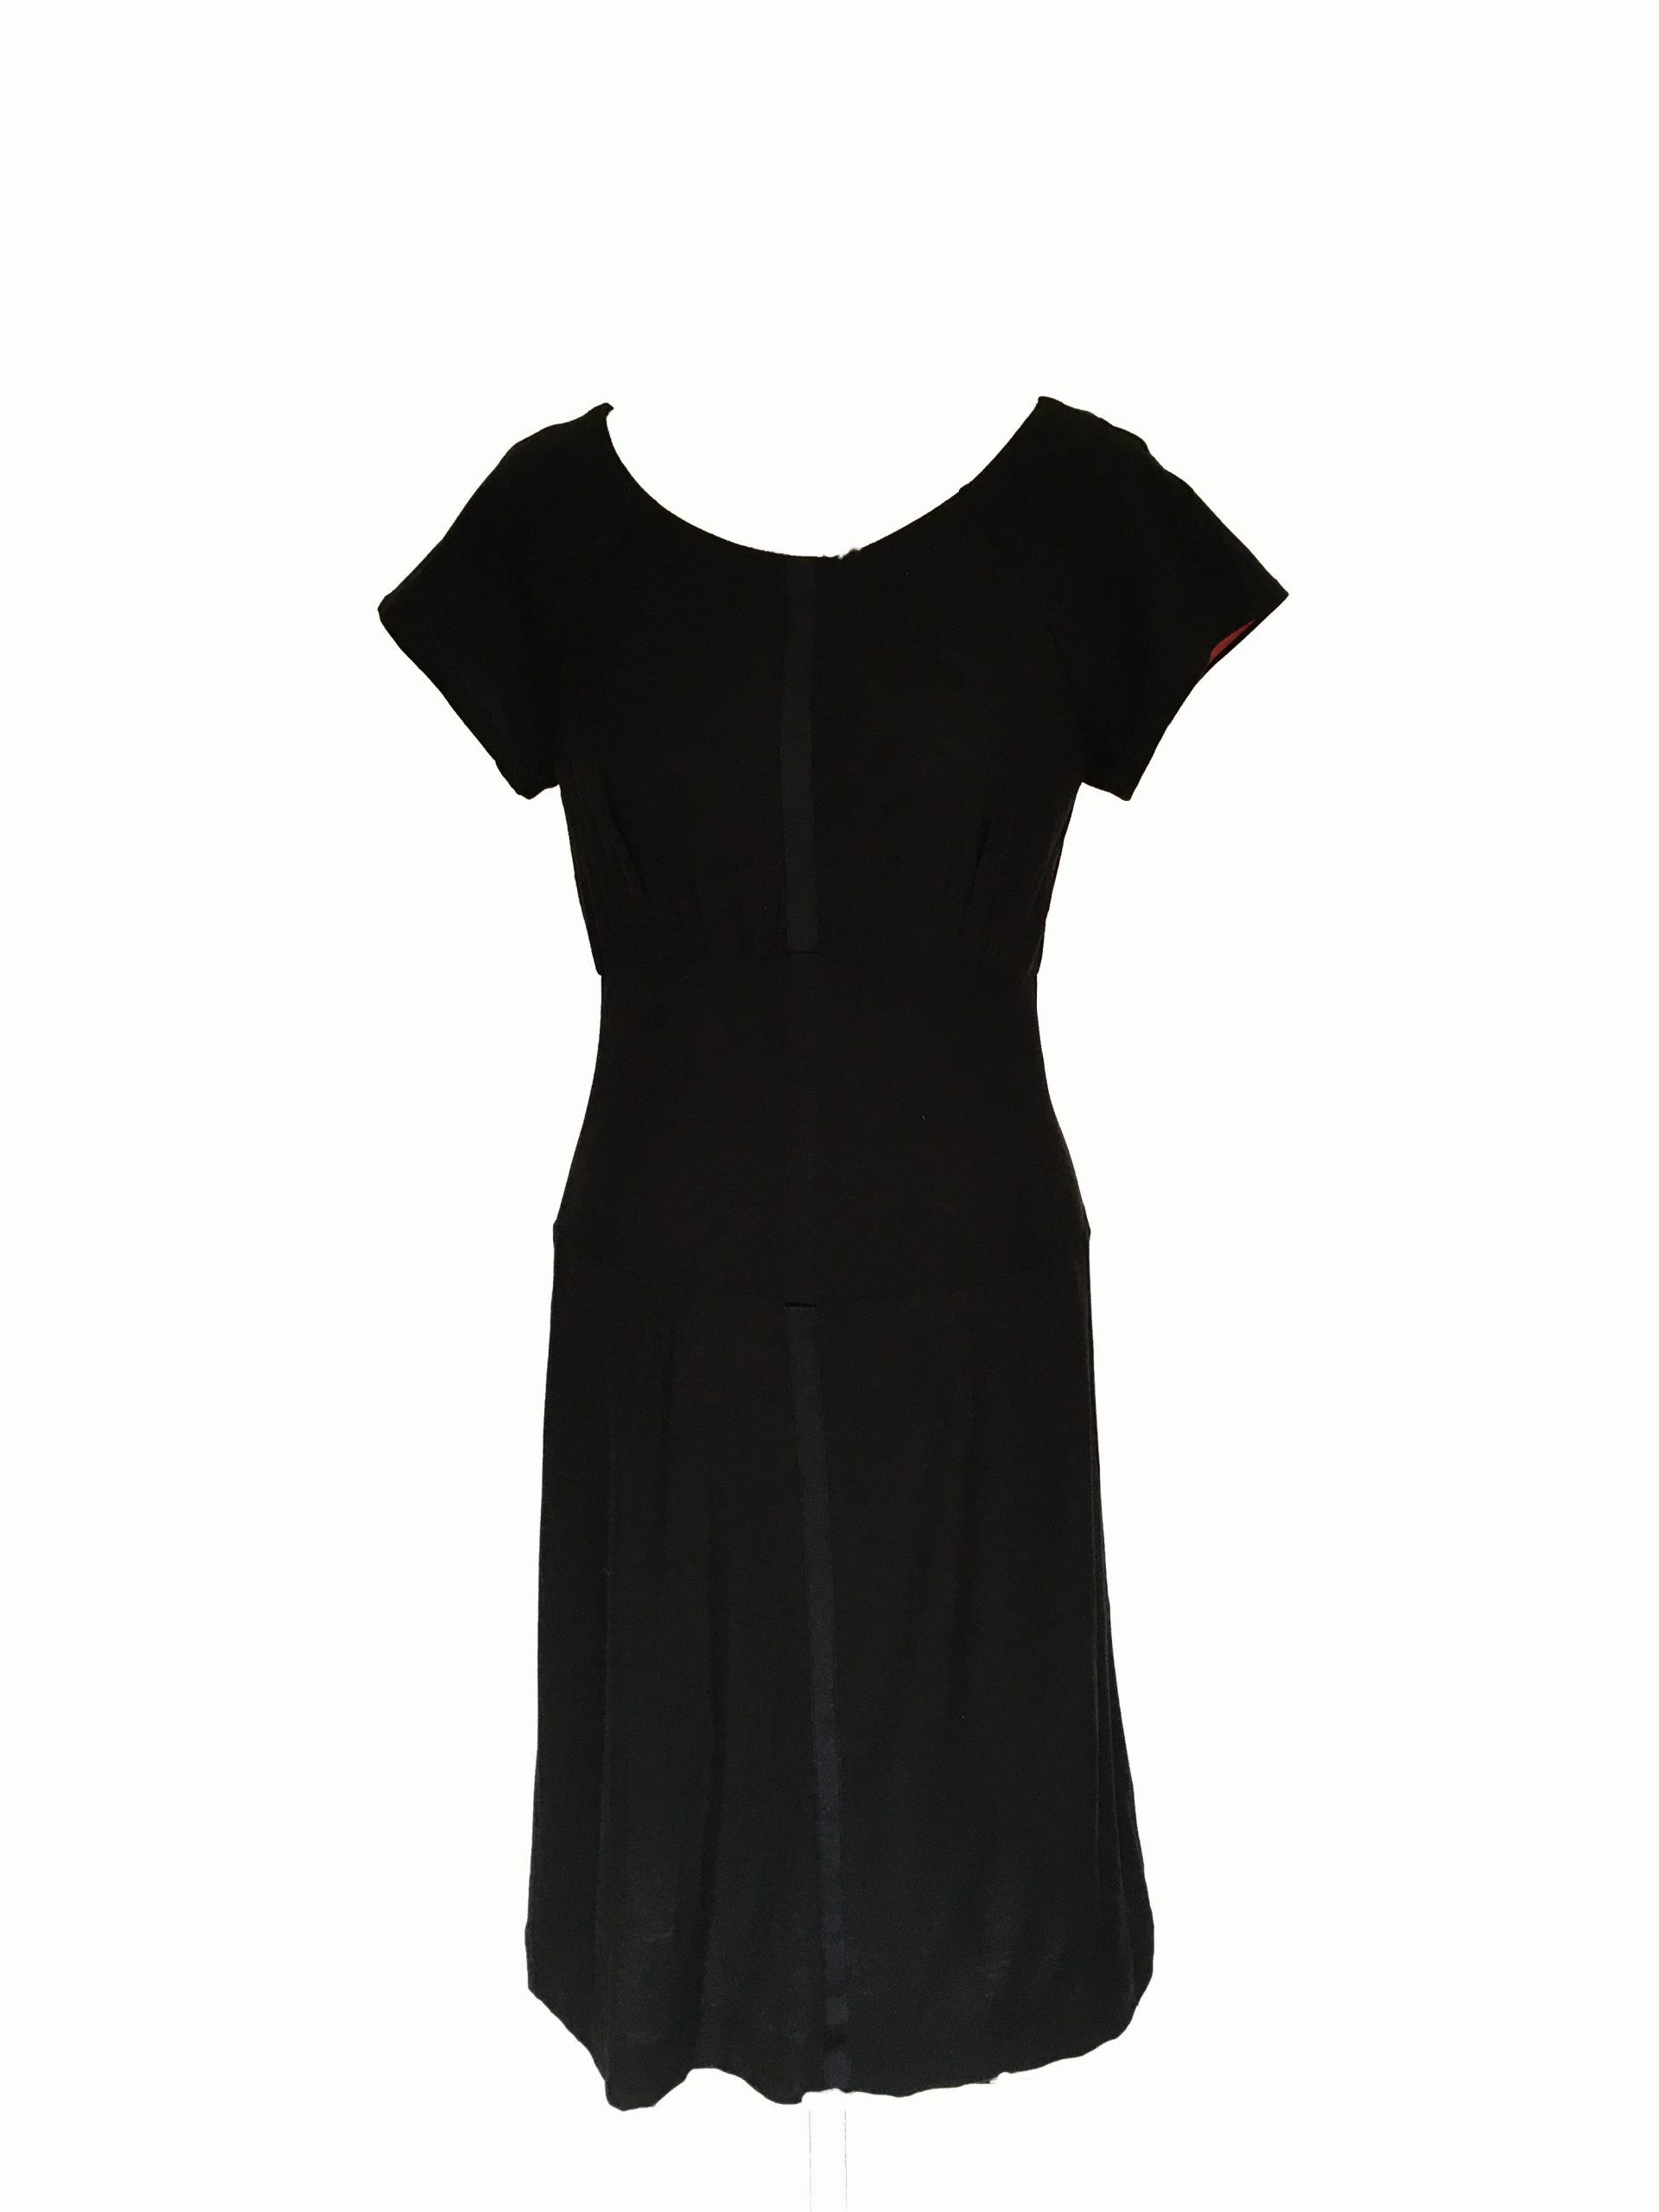 Black relaxed dress – French Capsule wardrobe